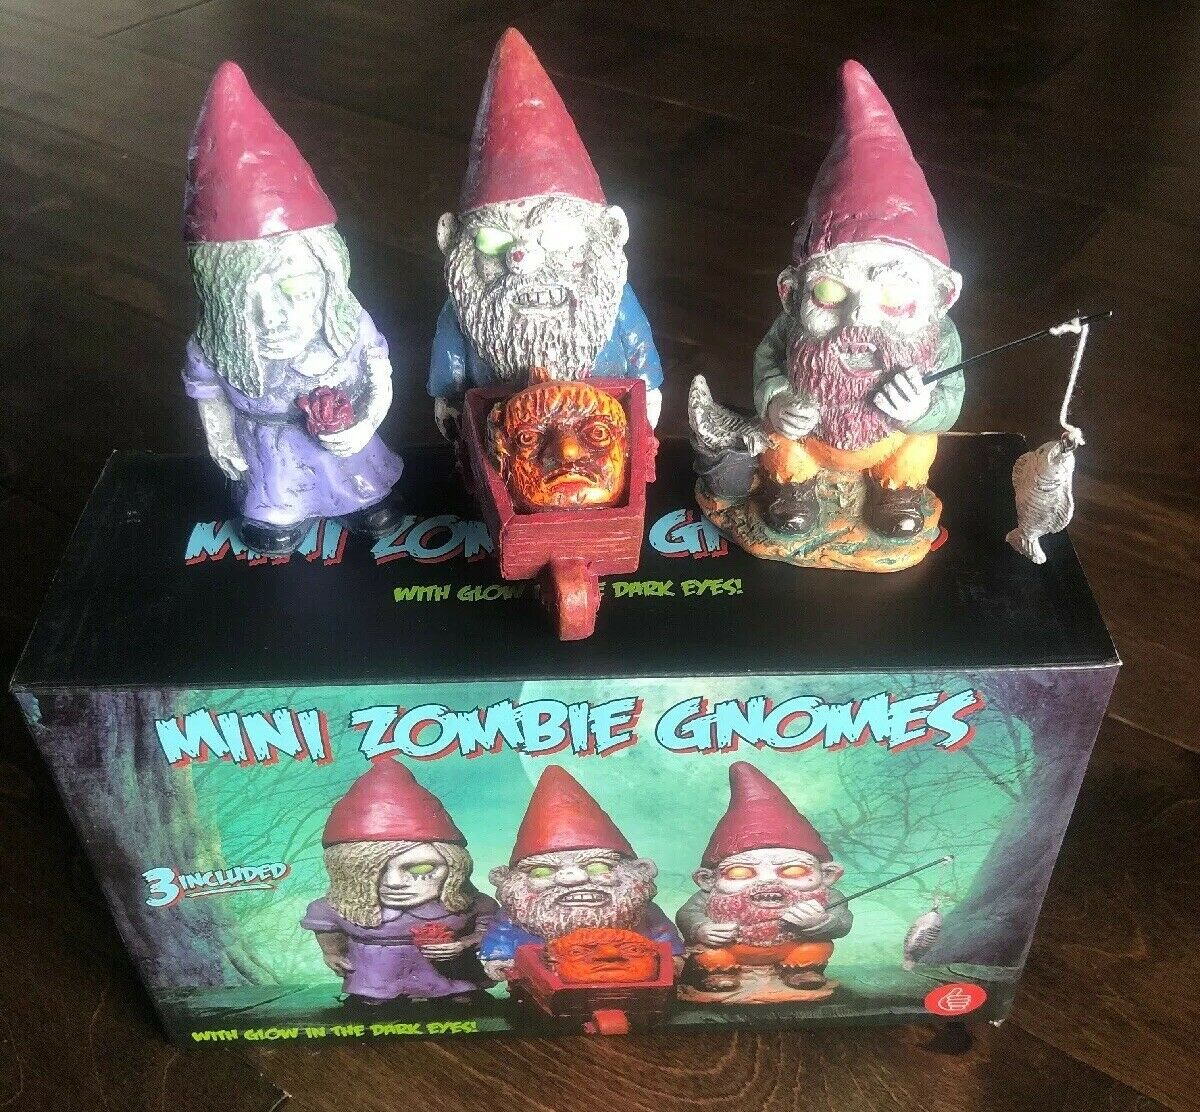 Mini Zombie Zombie Zombie Gnomes By Thumbs Up Glow In The Dark Eyes ae0c0c